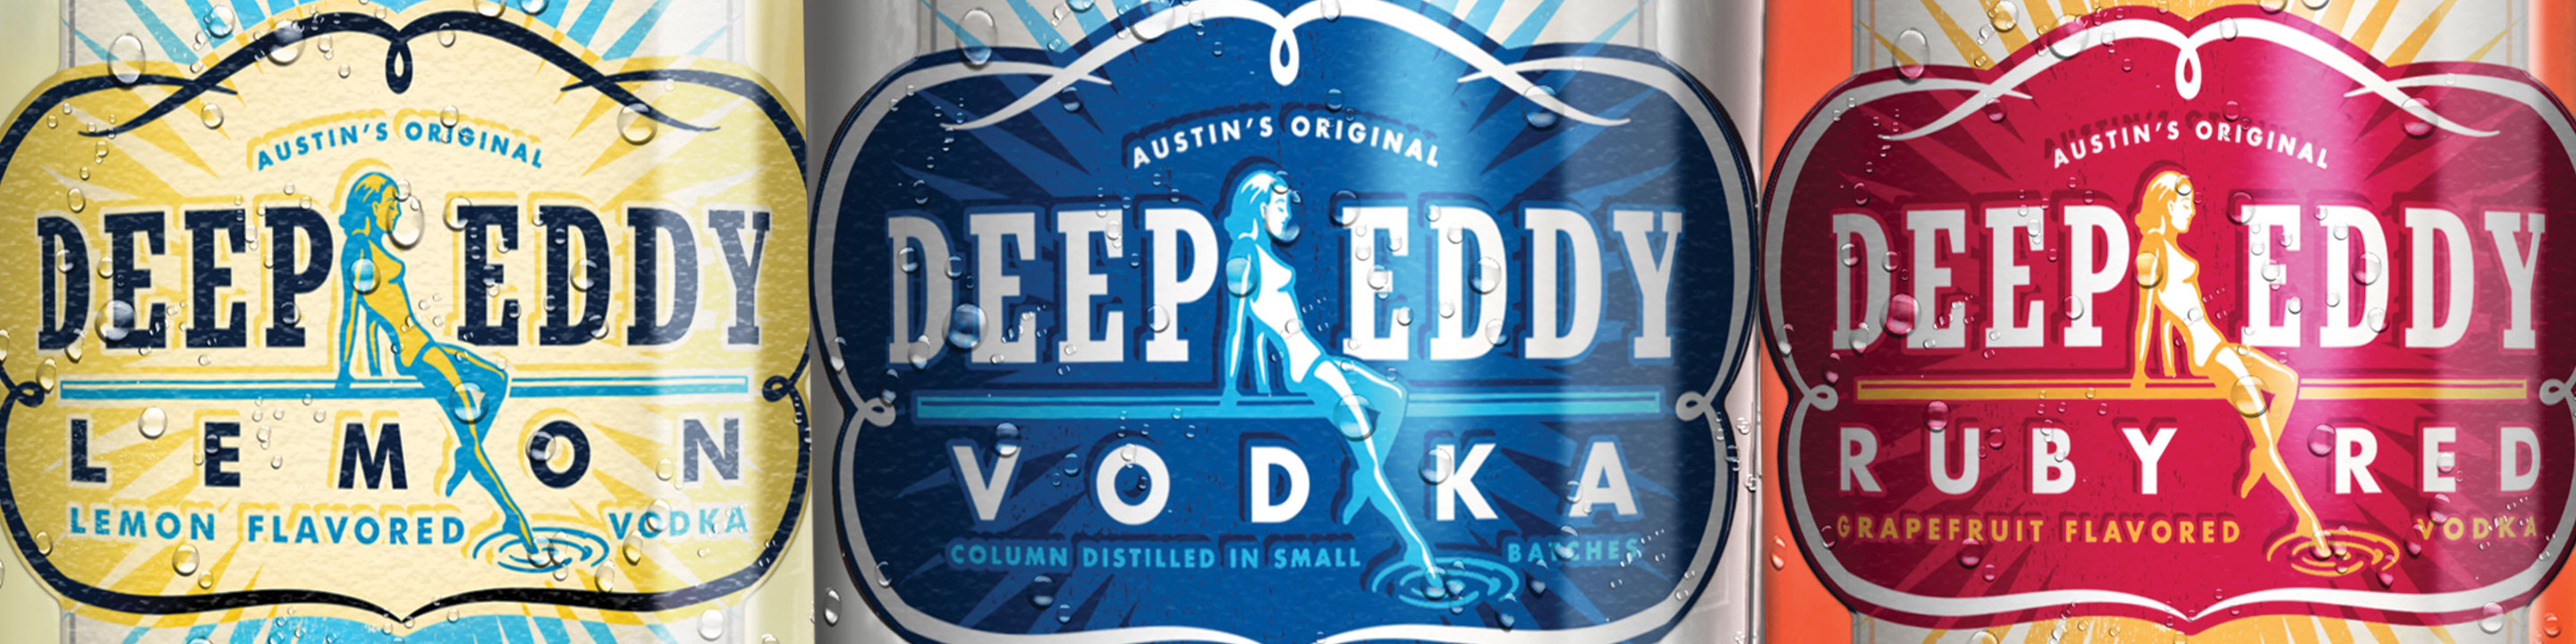 Taste the Deep Eddy Difference